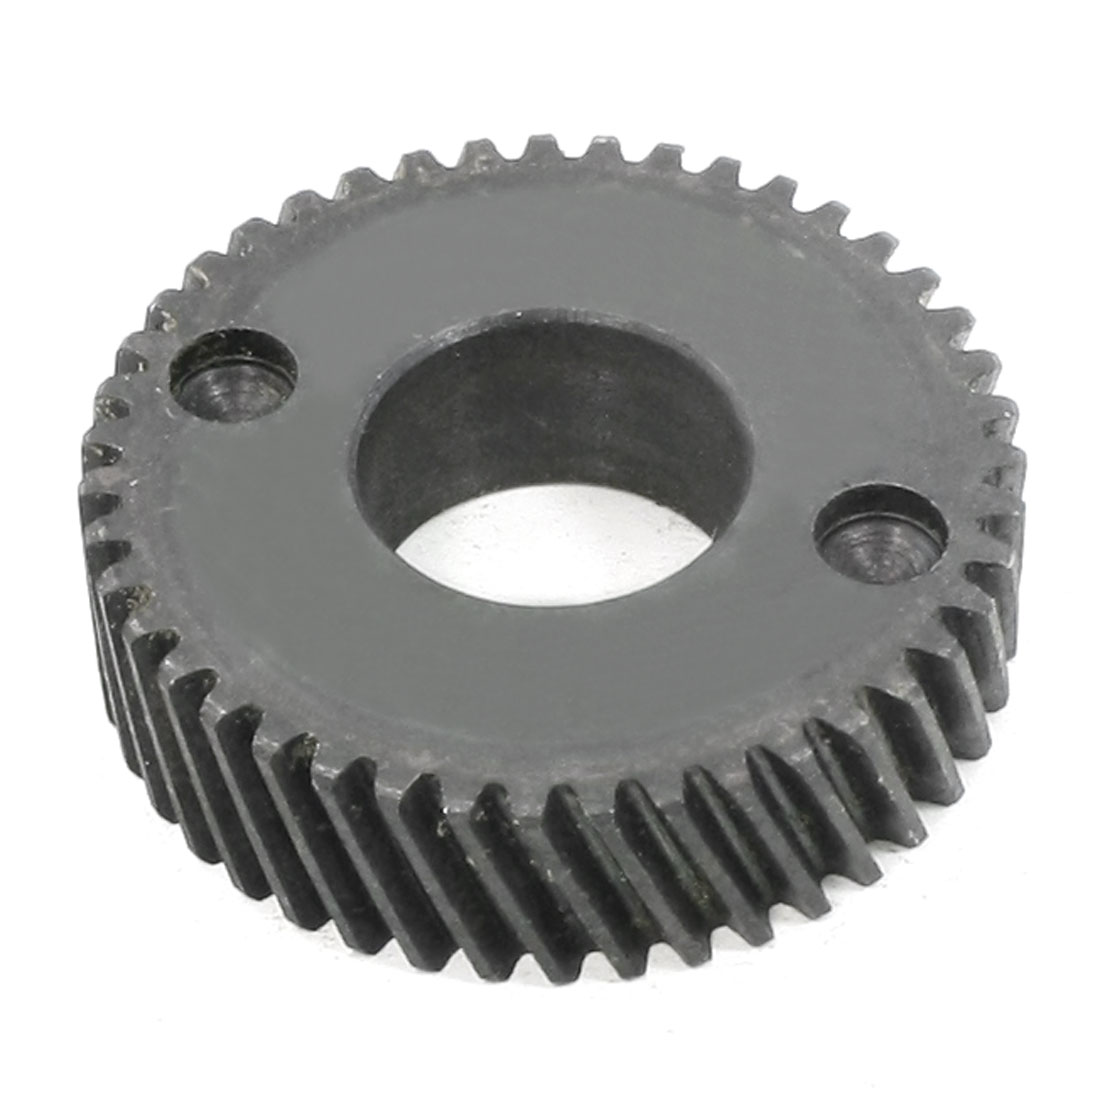 Replacement Part Helical Gear Wheel for Hitachi CC14 Cut-off Machine